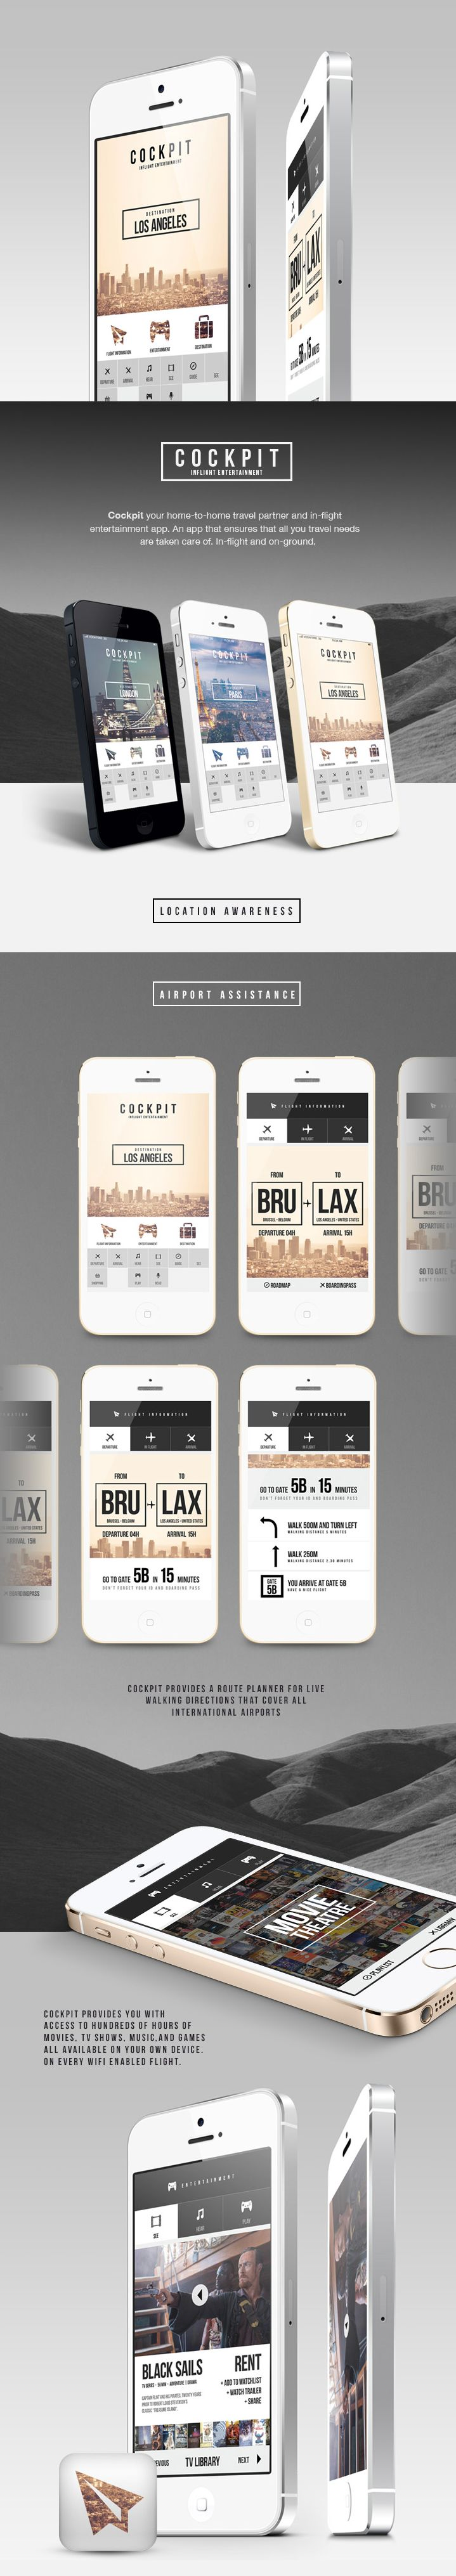 COCKPIT via #Behance #ui #app #design Want something like this? Contact us at ashley@firethorne.org Or visit our website at www.firethorne.org! #firethornefirm #mobile #design #ideas #inspiration